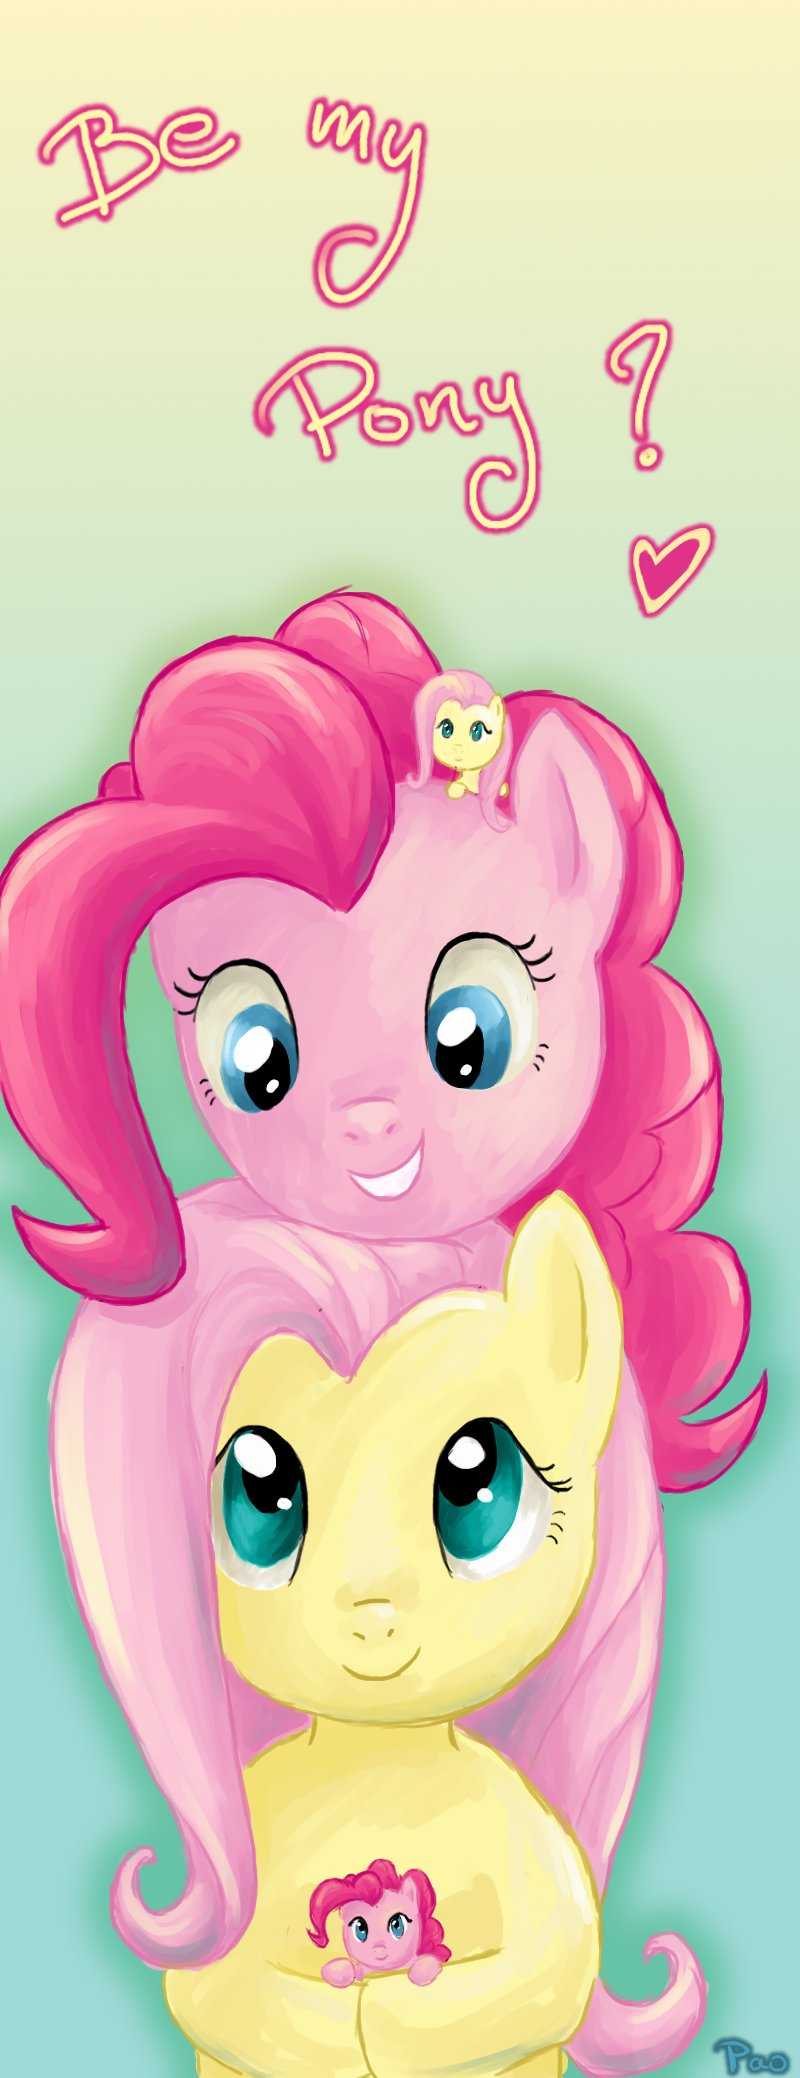 Fluttershy and Pinkie Pie by tite-pao